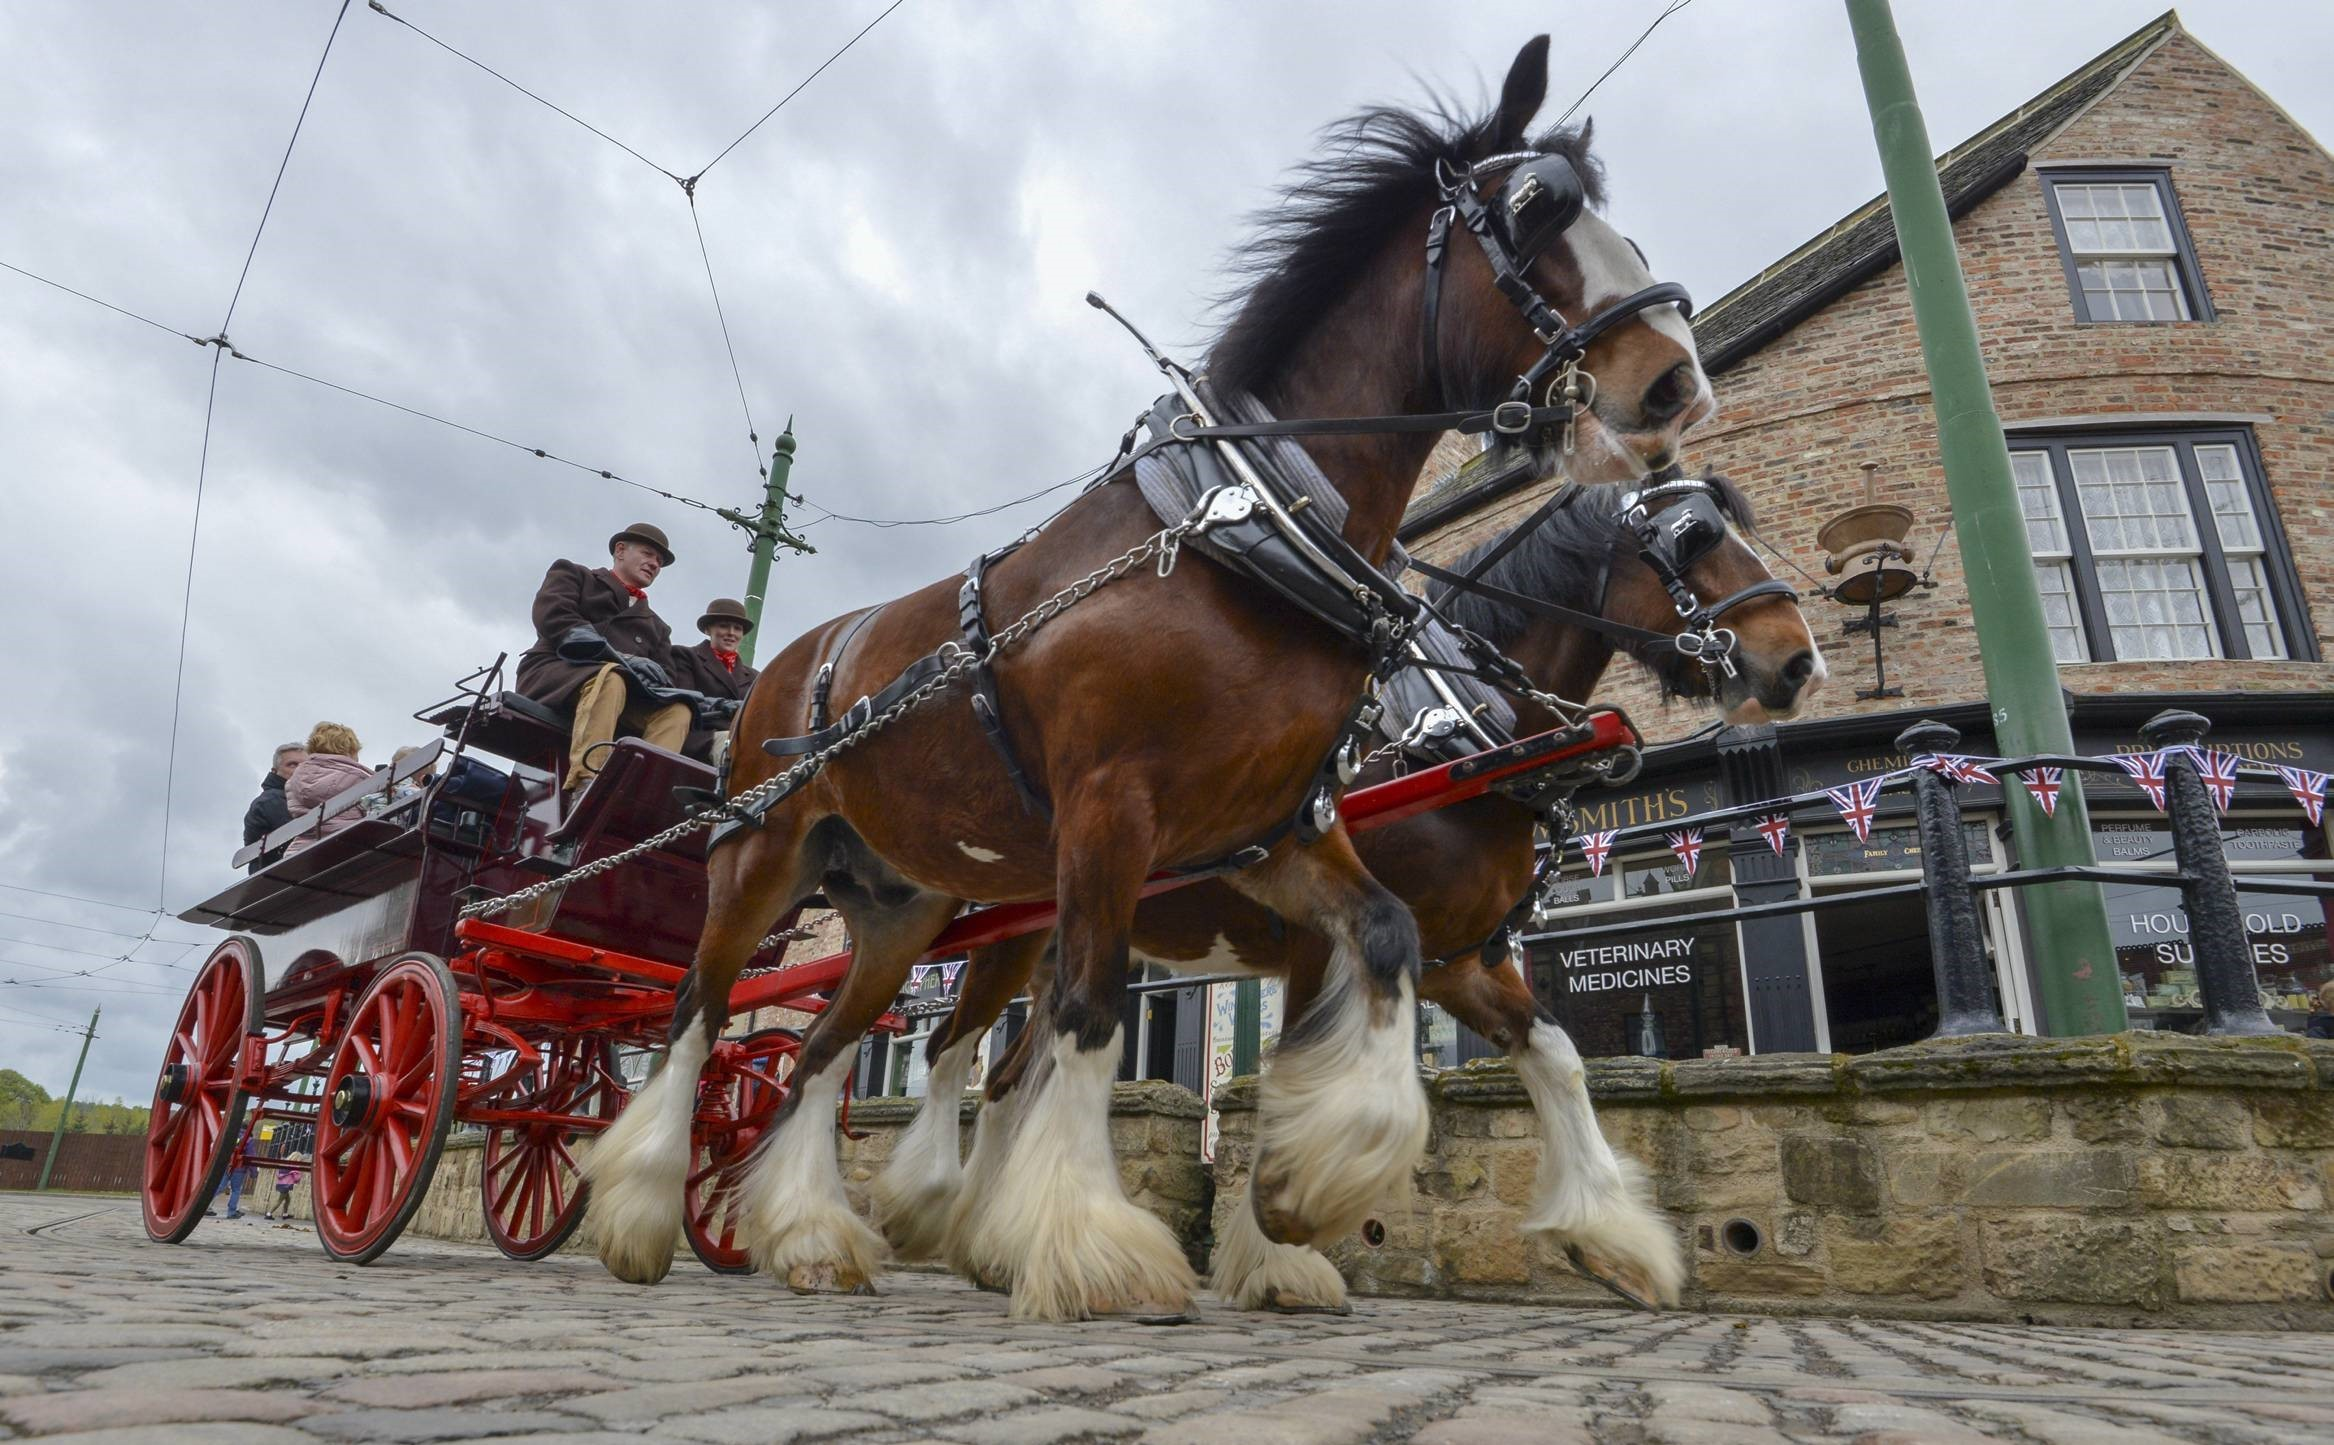 WORKING HORSES: The horses at Beamish Museum Picture: NORTH NEWS AND PICTURES LTD